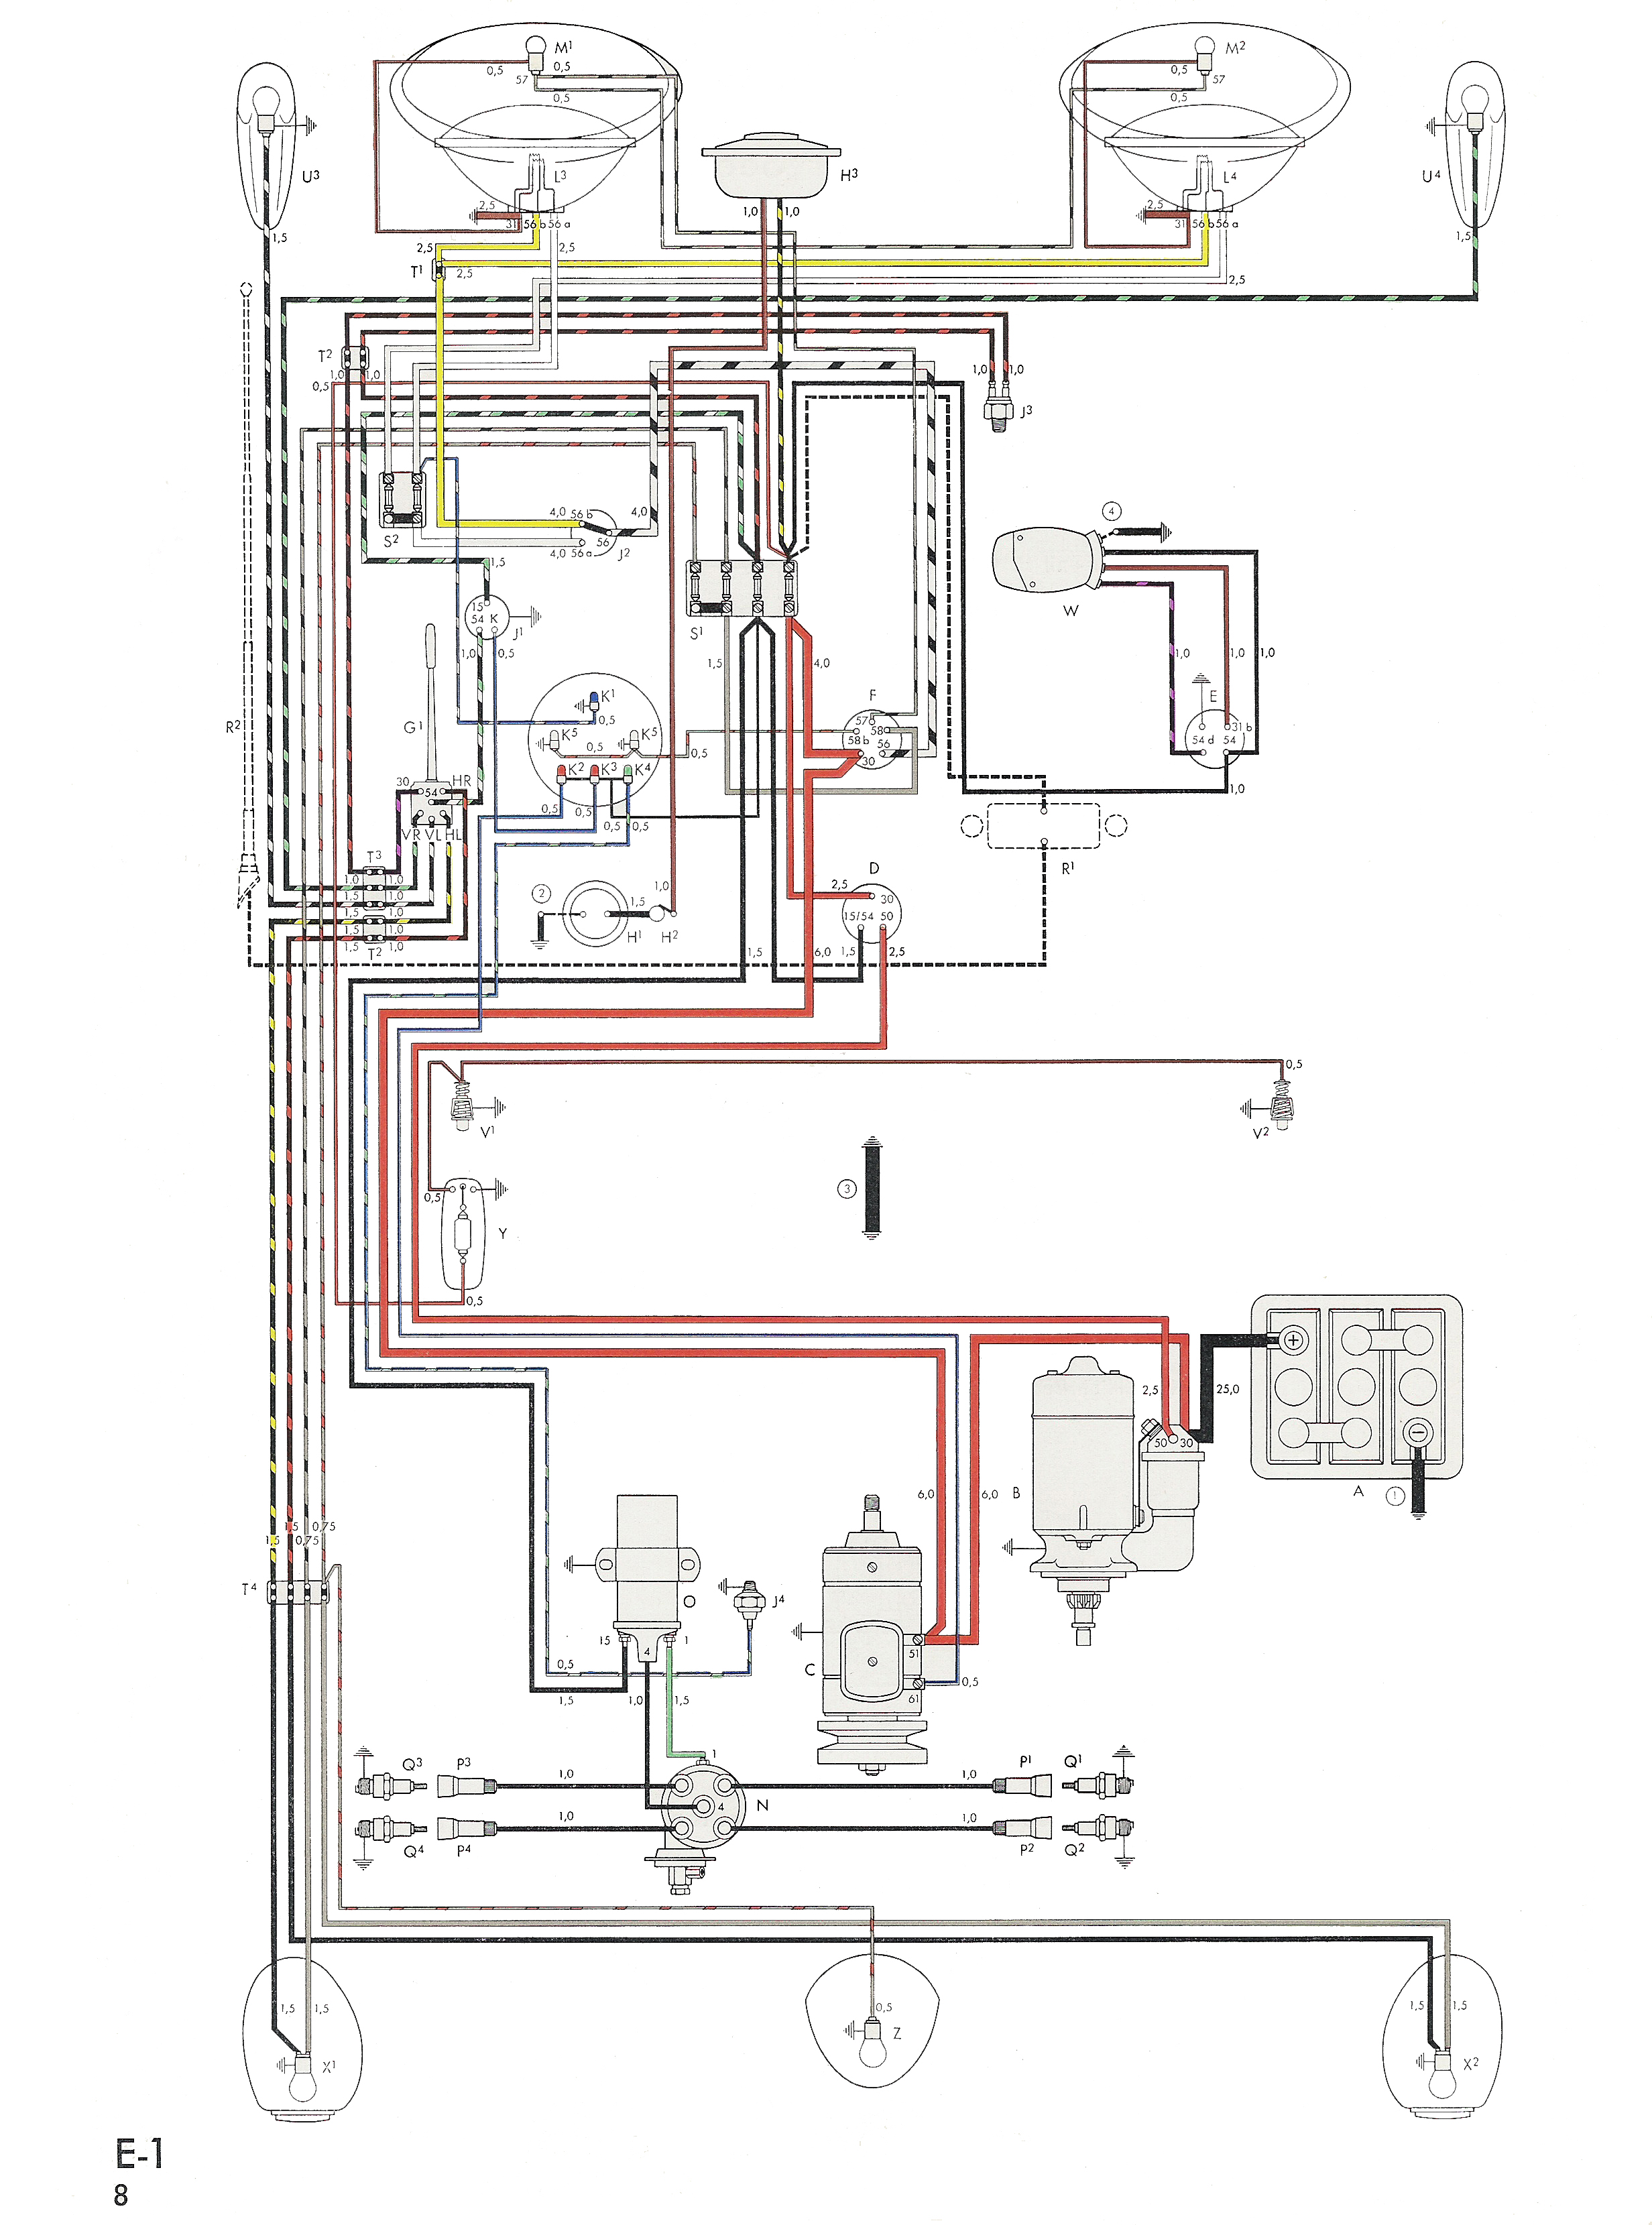 1998 Vw Passat Fuse Diagram Wiring Library 2012 Box Thesamba Com Type 1 Diagrams Rh 1979 Bus